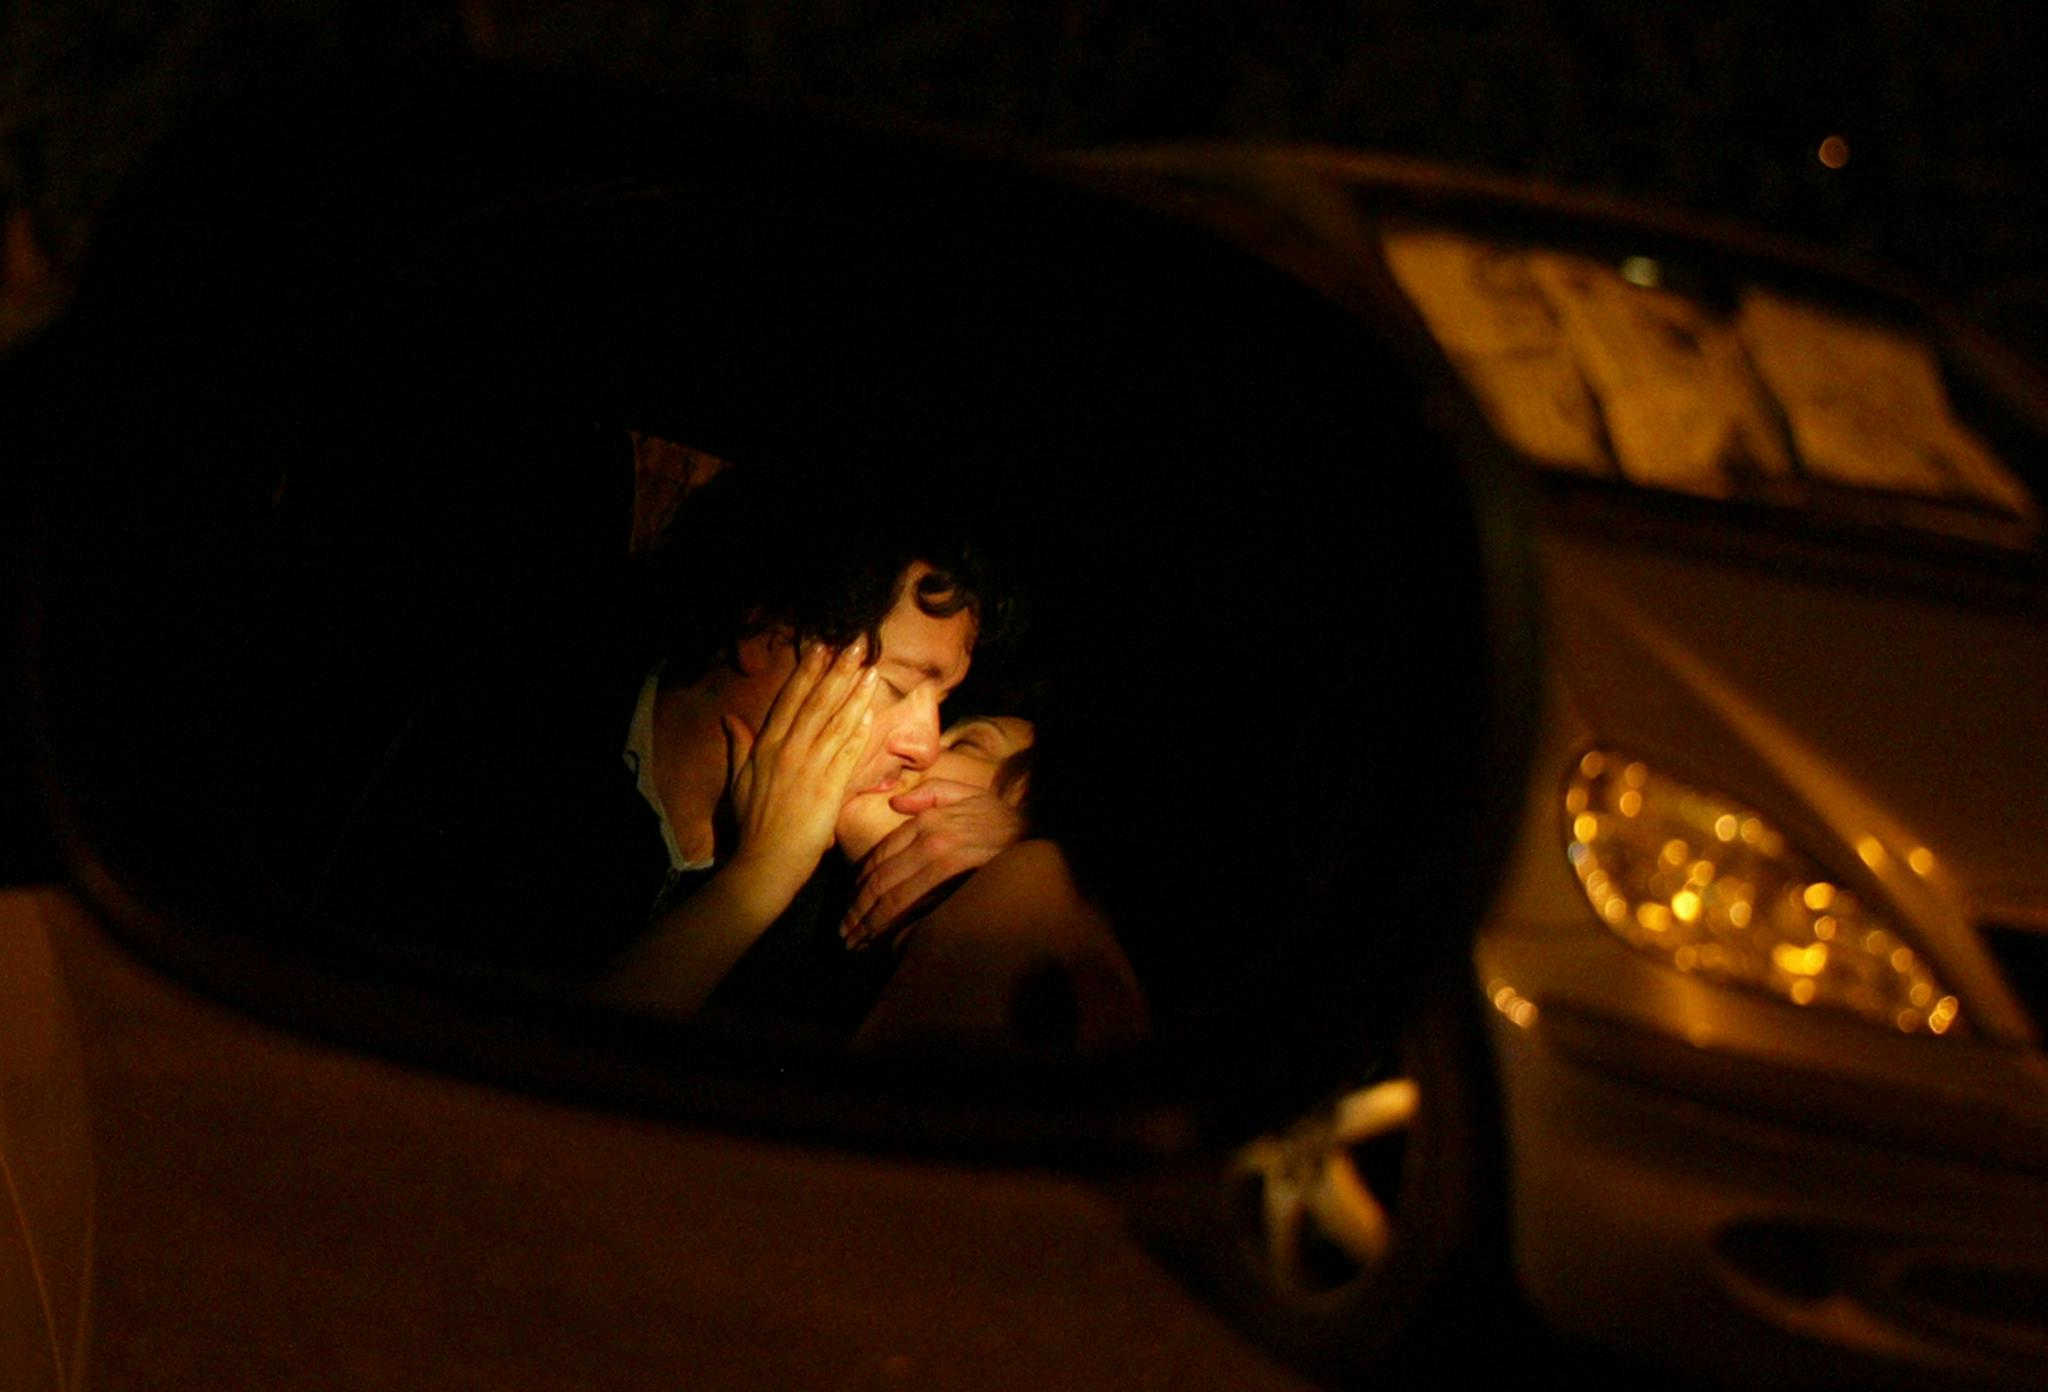 A couple kiss inside a parked car in Central Italy on early May 30, 2004.